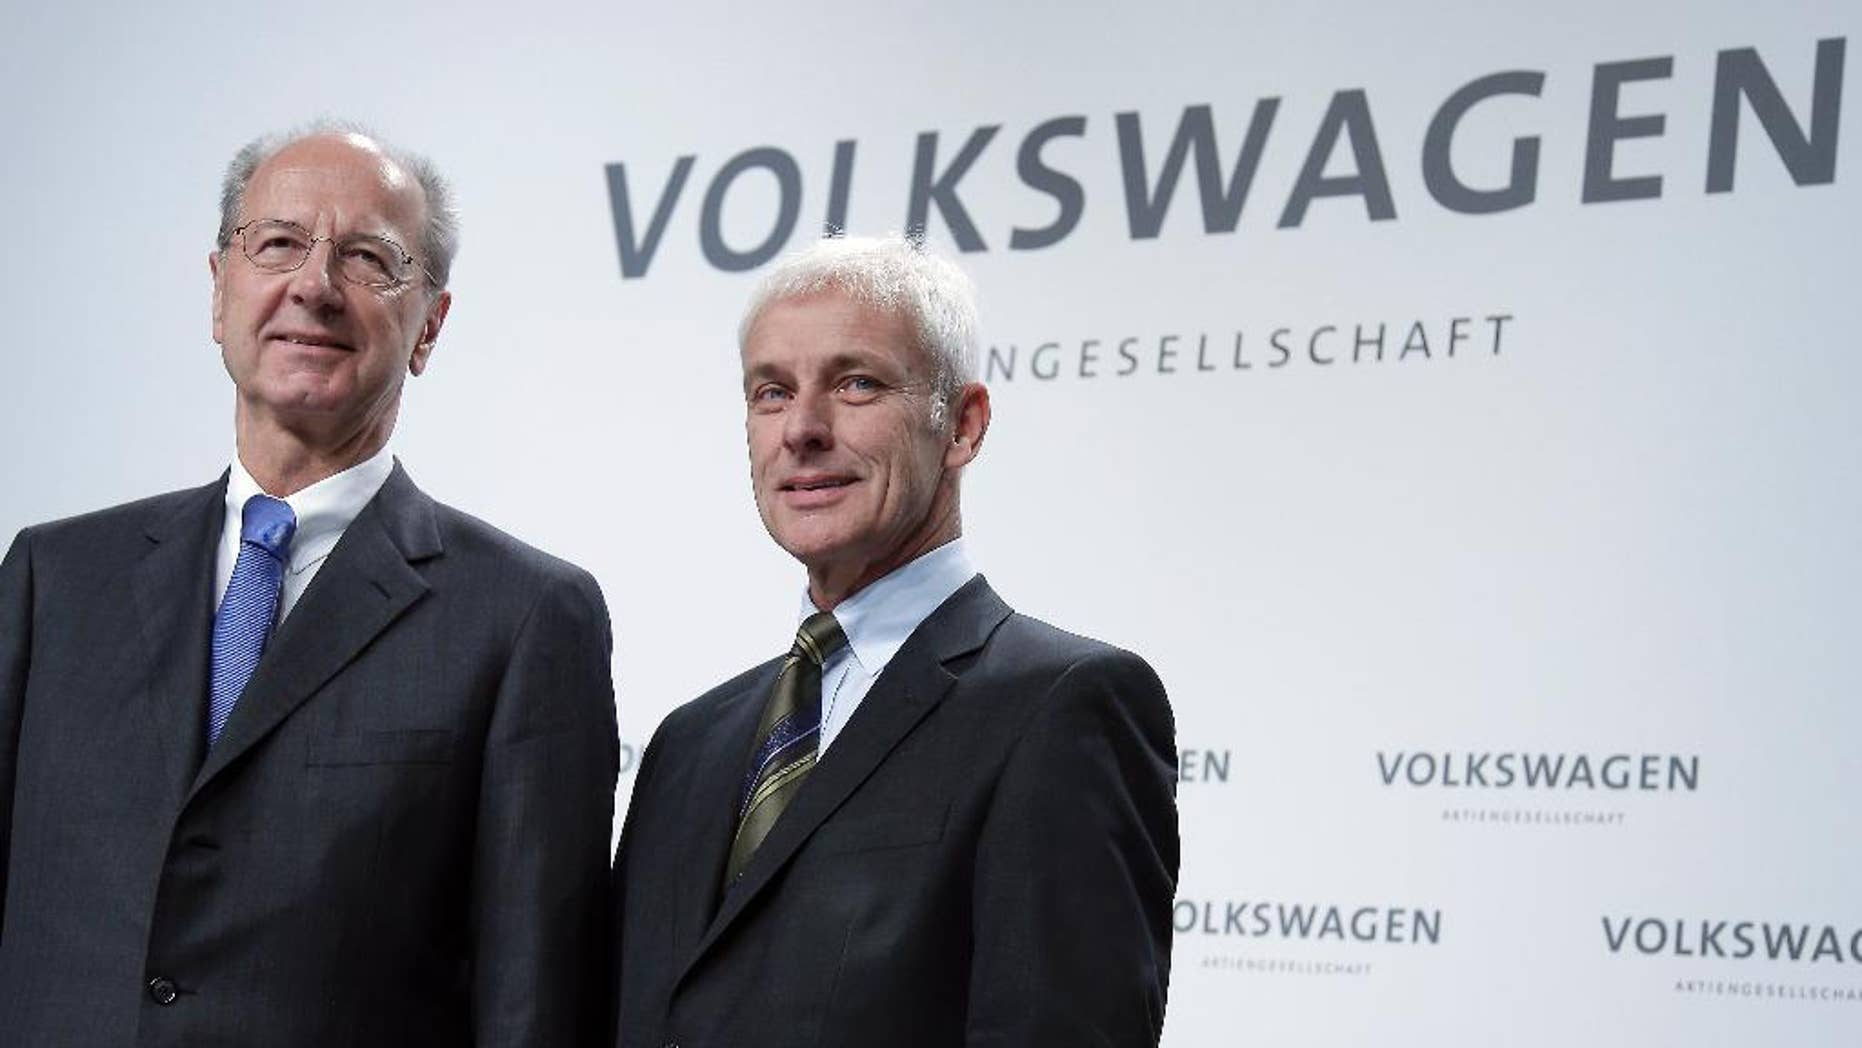 Hans Dieter Poetsch, chairman of the board of directors of Volkswagen, left, and Matthias Mueller, CEO of Volkswagen, right, pose for the media prior to a press conference of the German car manufacturer Volkswagen in Wolfsburg, Germany, Thursday, Dec. 10, 2015. (AP Photo/Michael Sohn)